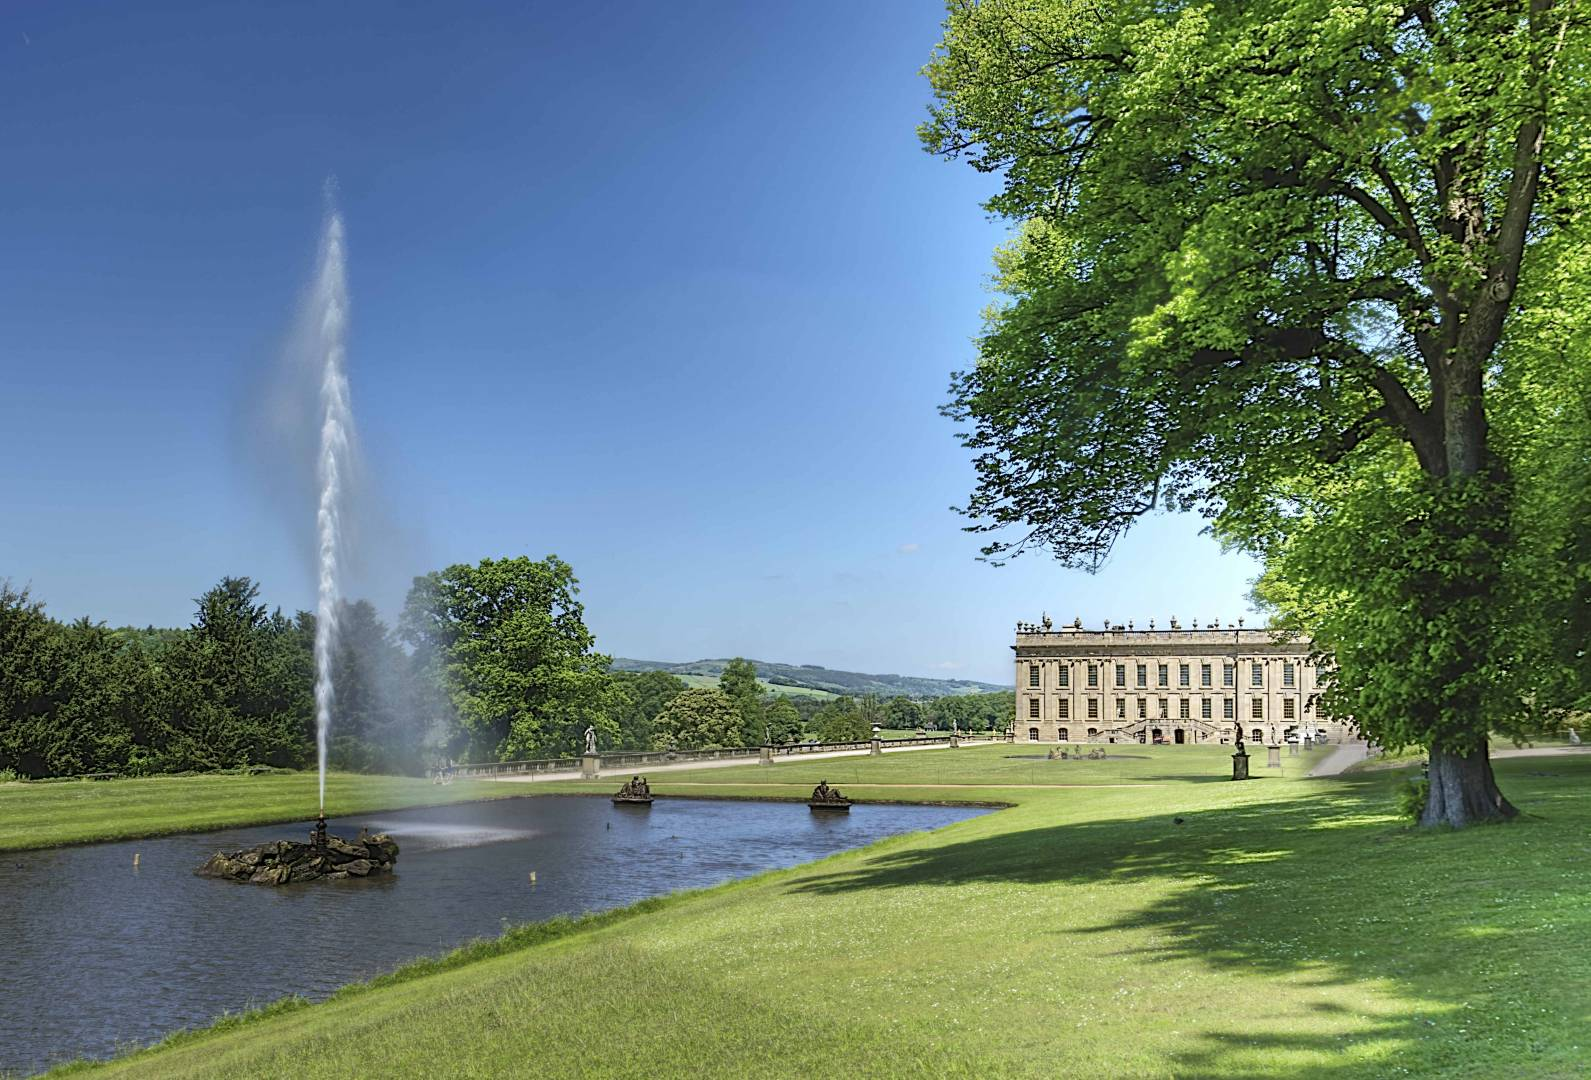 Chatsworth House, Emperor Fountain - 26th May 2017. Fujifilm XT2 - with 16mm F1.4 at 1/38s, f/11, ISO 250